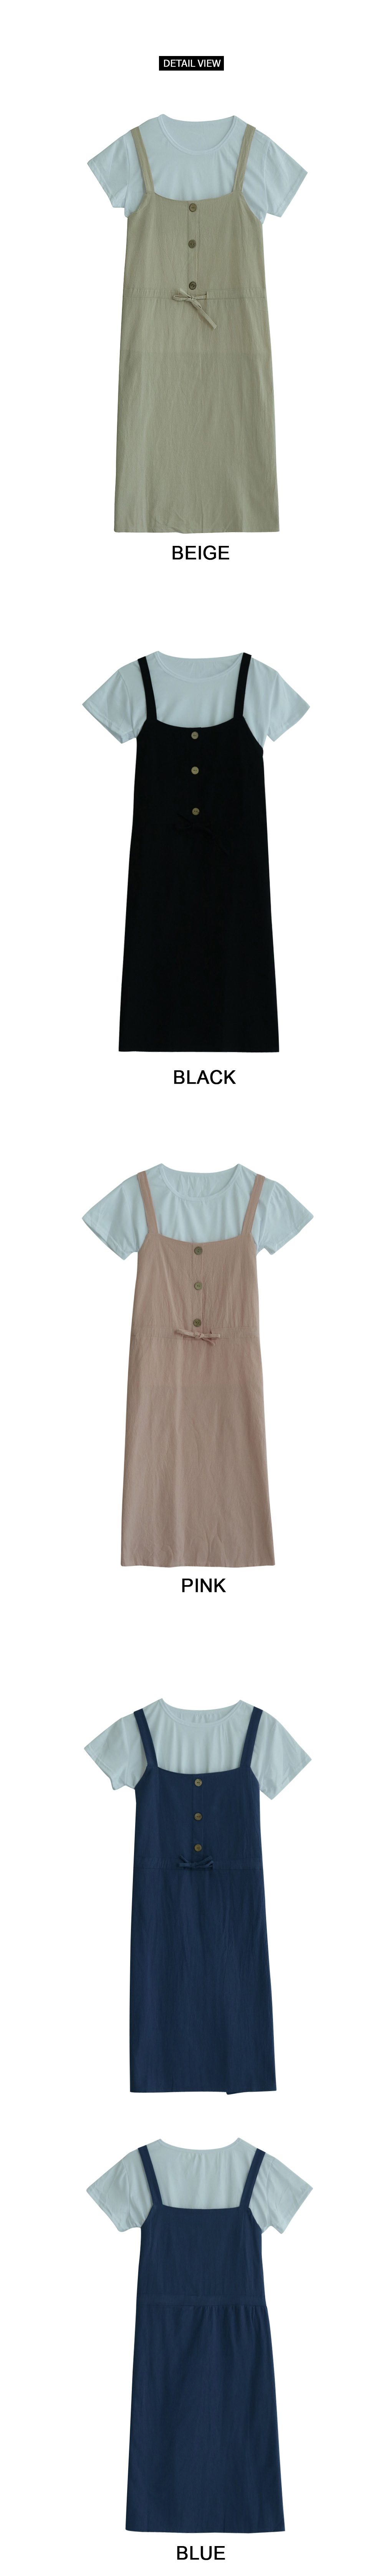 Smile Four Button Dress